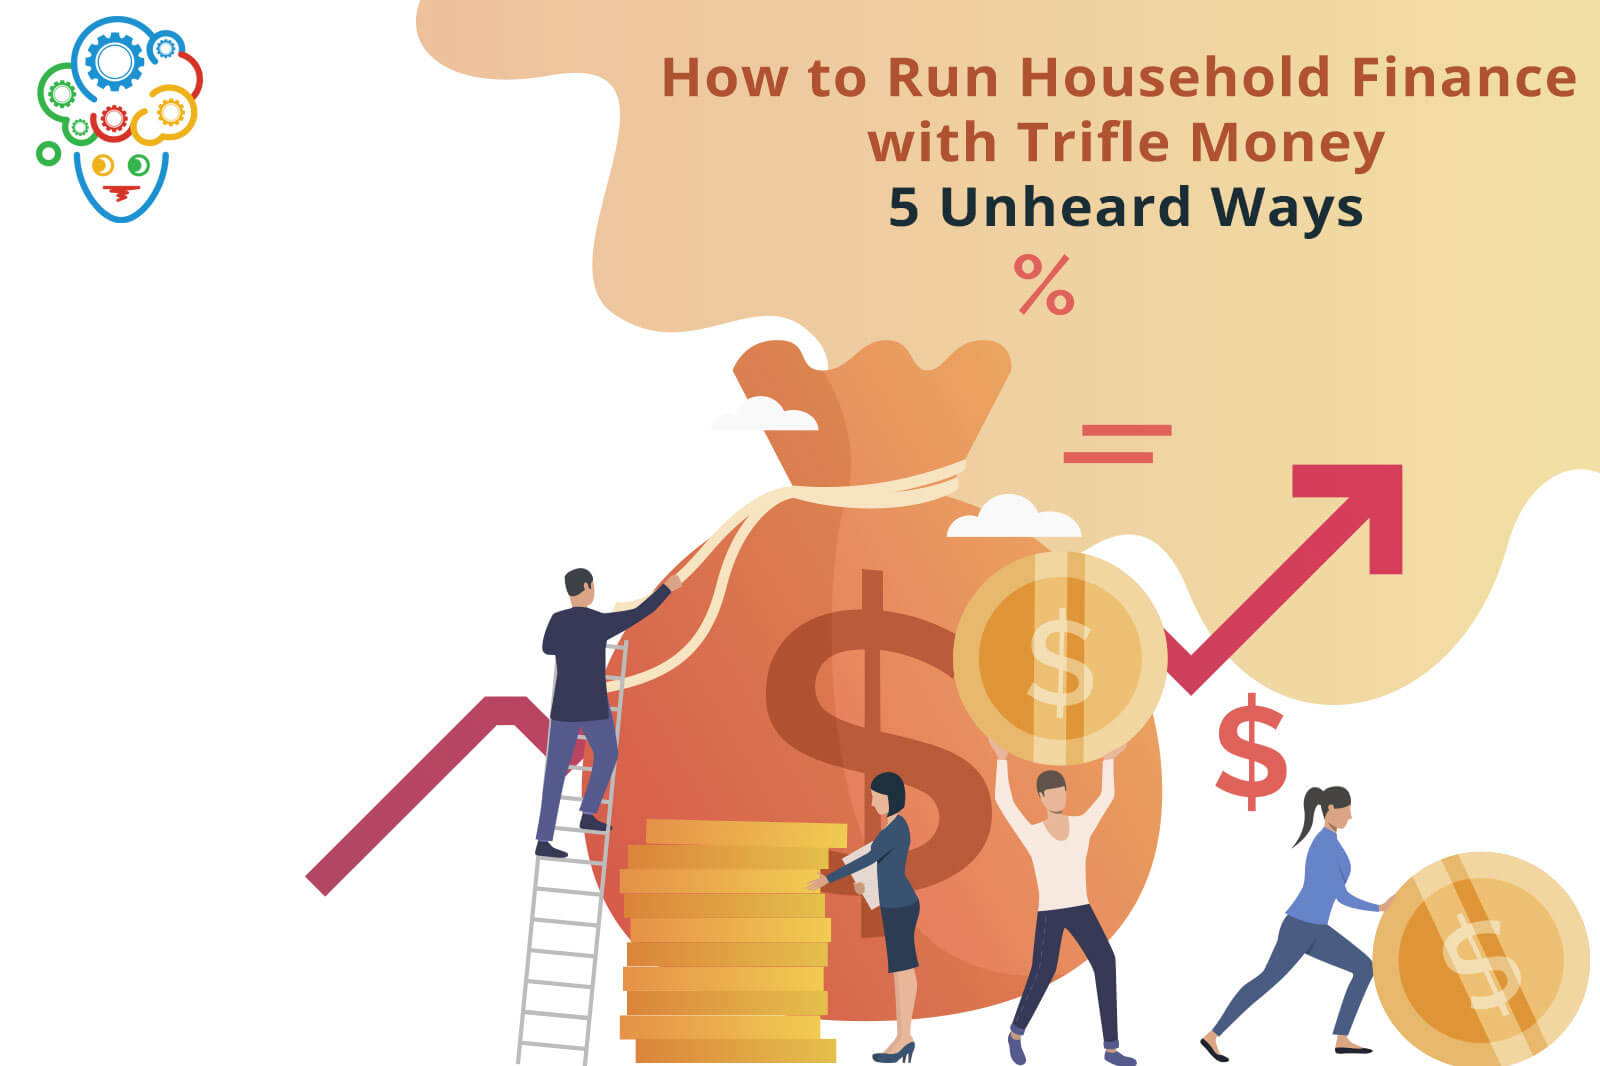 5 Way Household Finance with Trifle Money